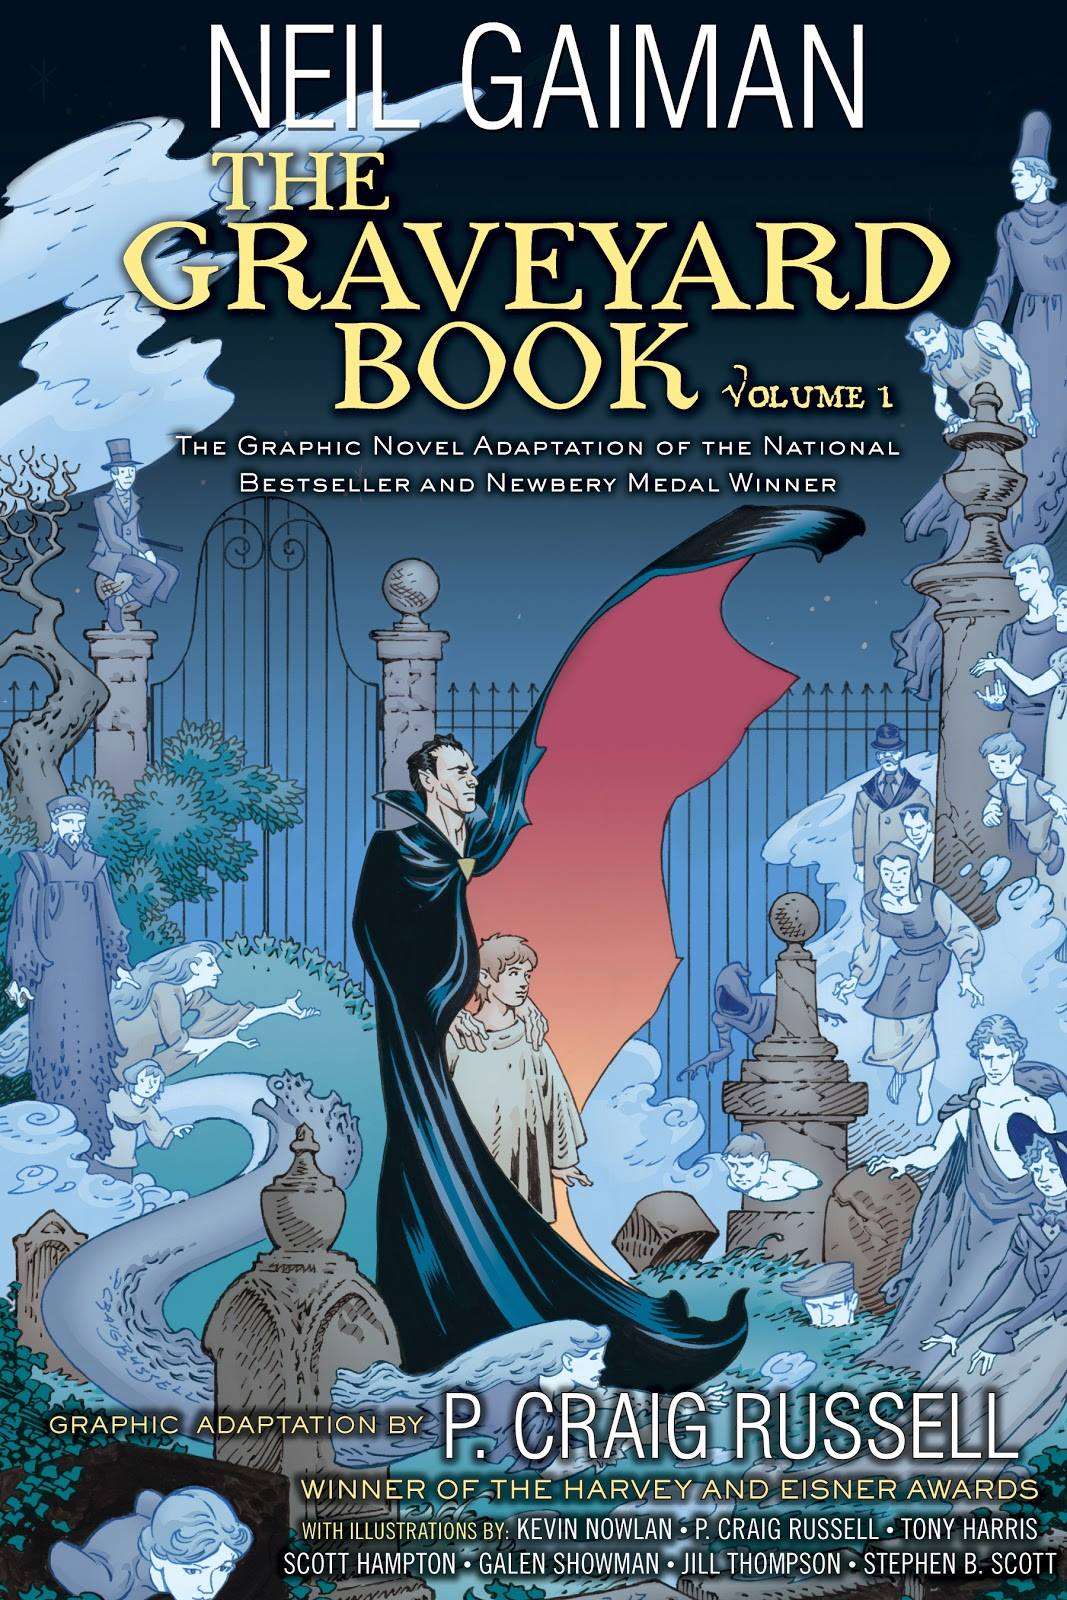 The Graveyard Book Graphic Novel: Volume 1 by Neil Gaiman & P. Craig Russell